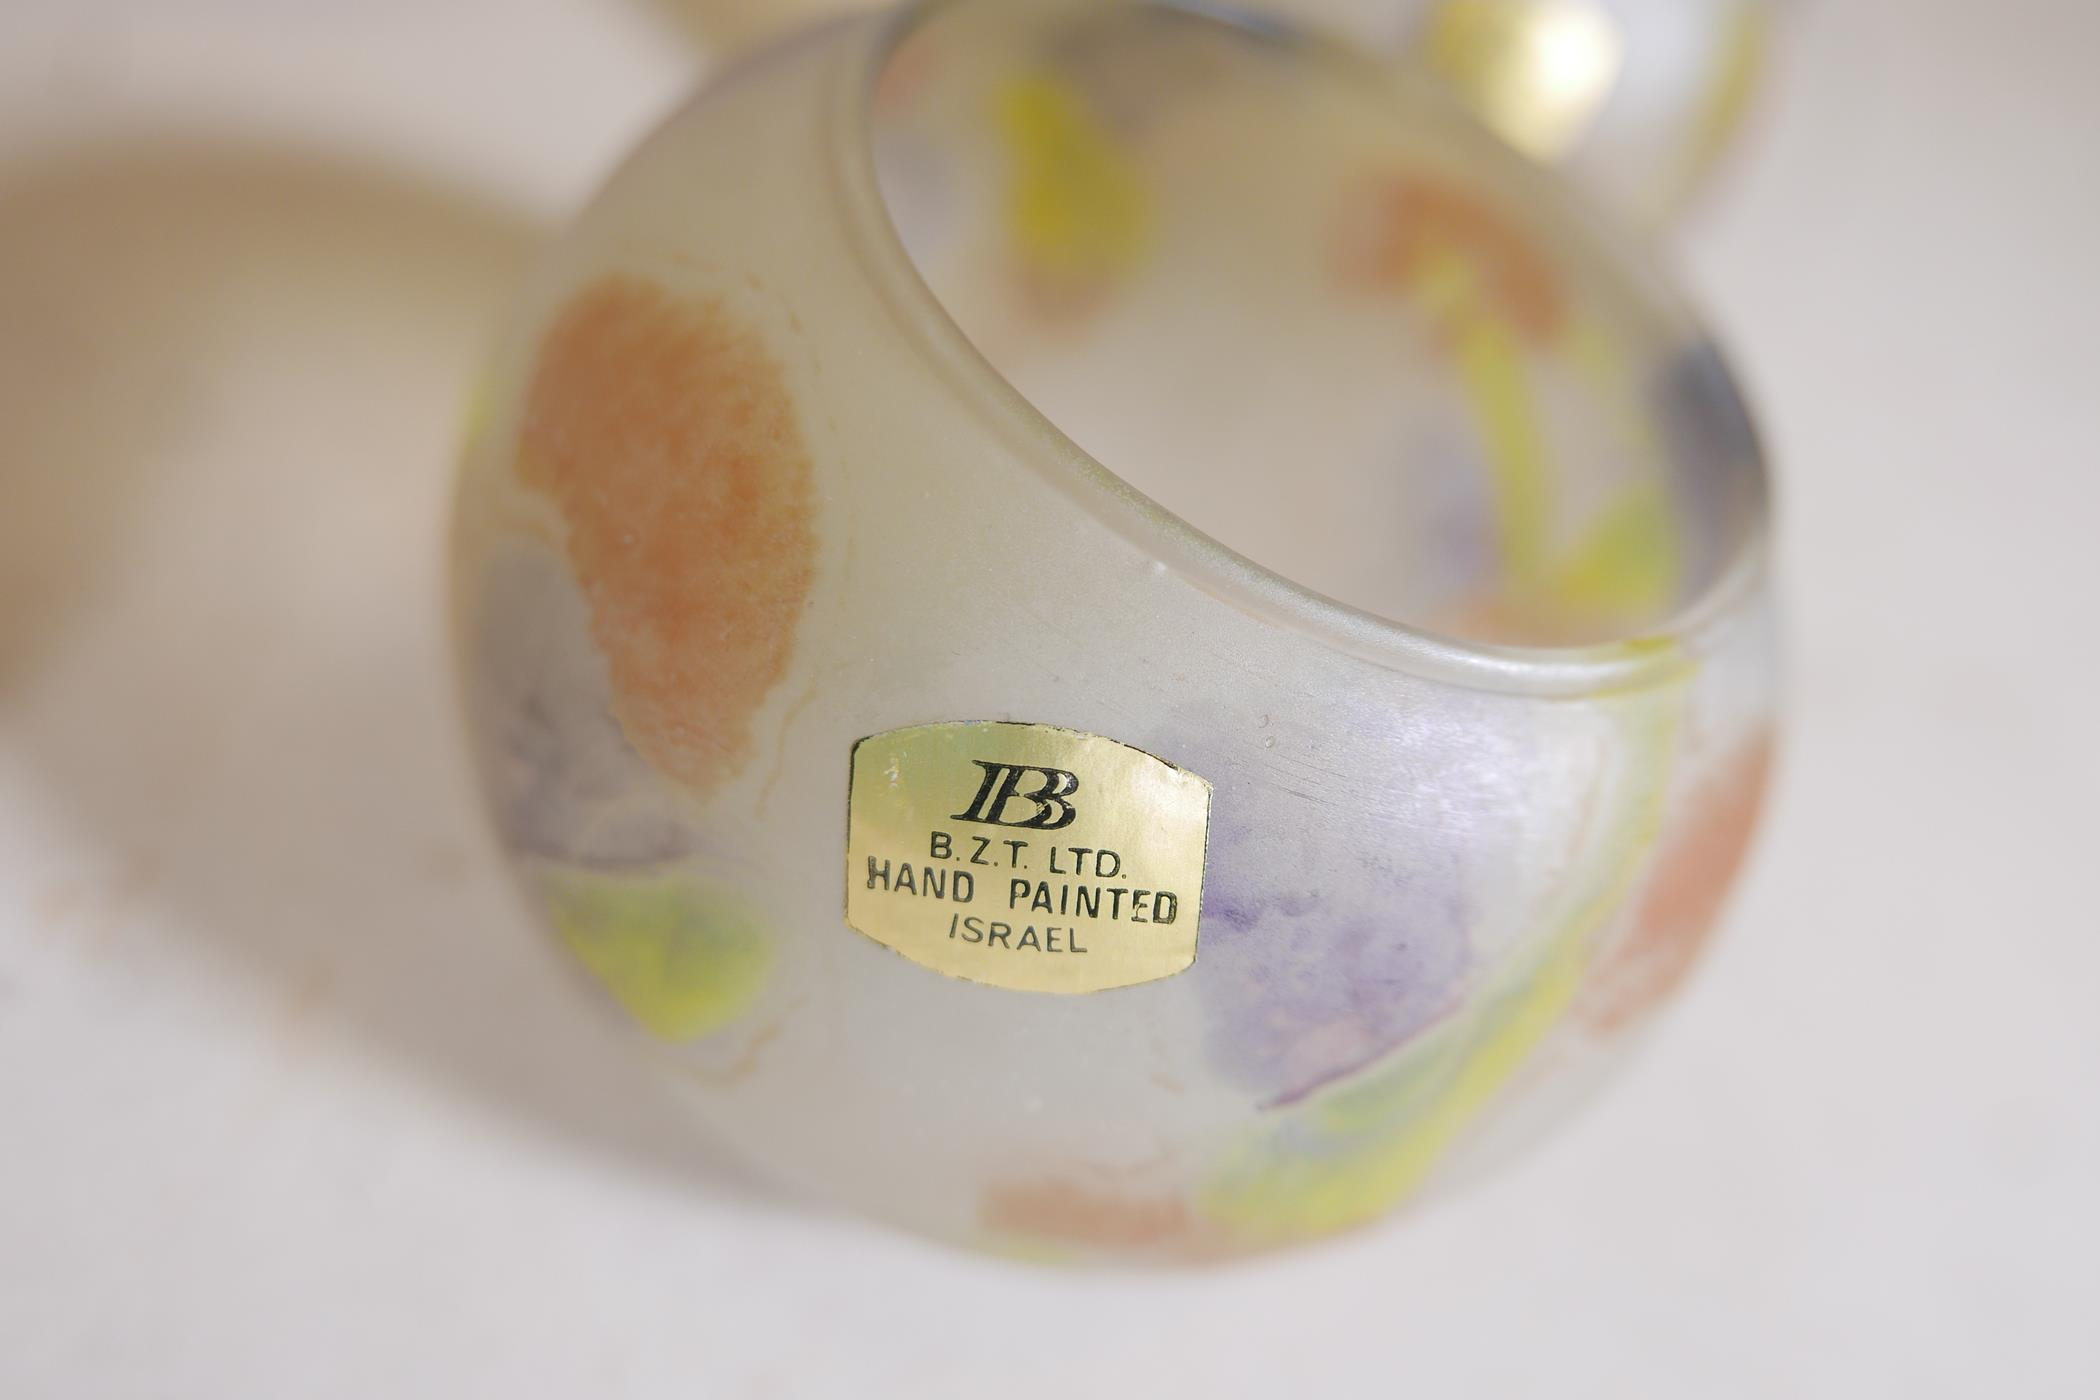 A quantity of Israeli hand painted studio glass to include lamp shades, vases, bowls and dishes, - Image 8 of 8